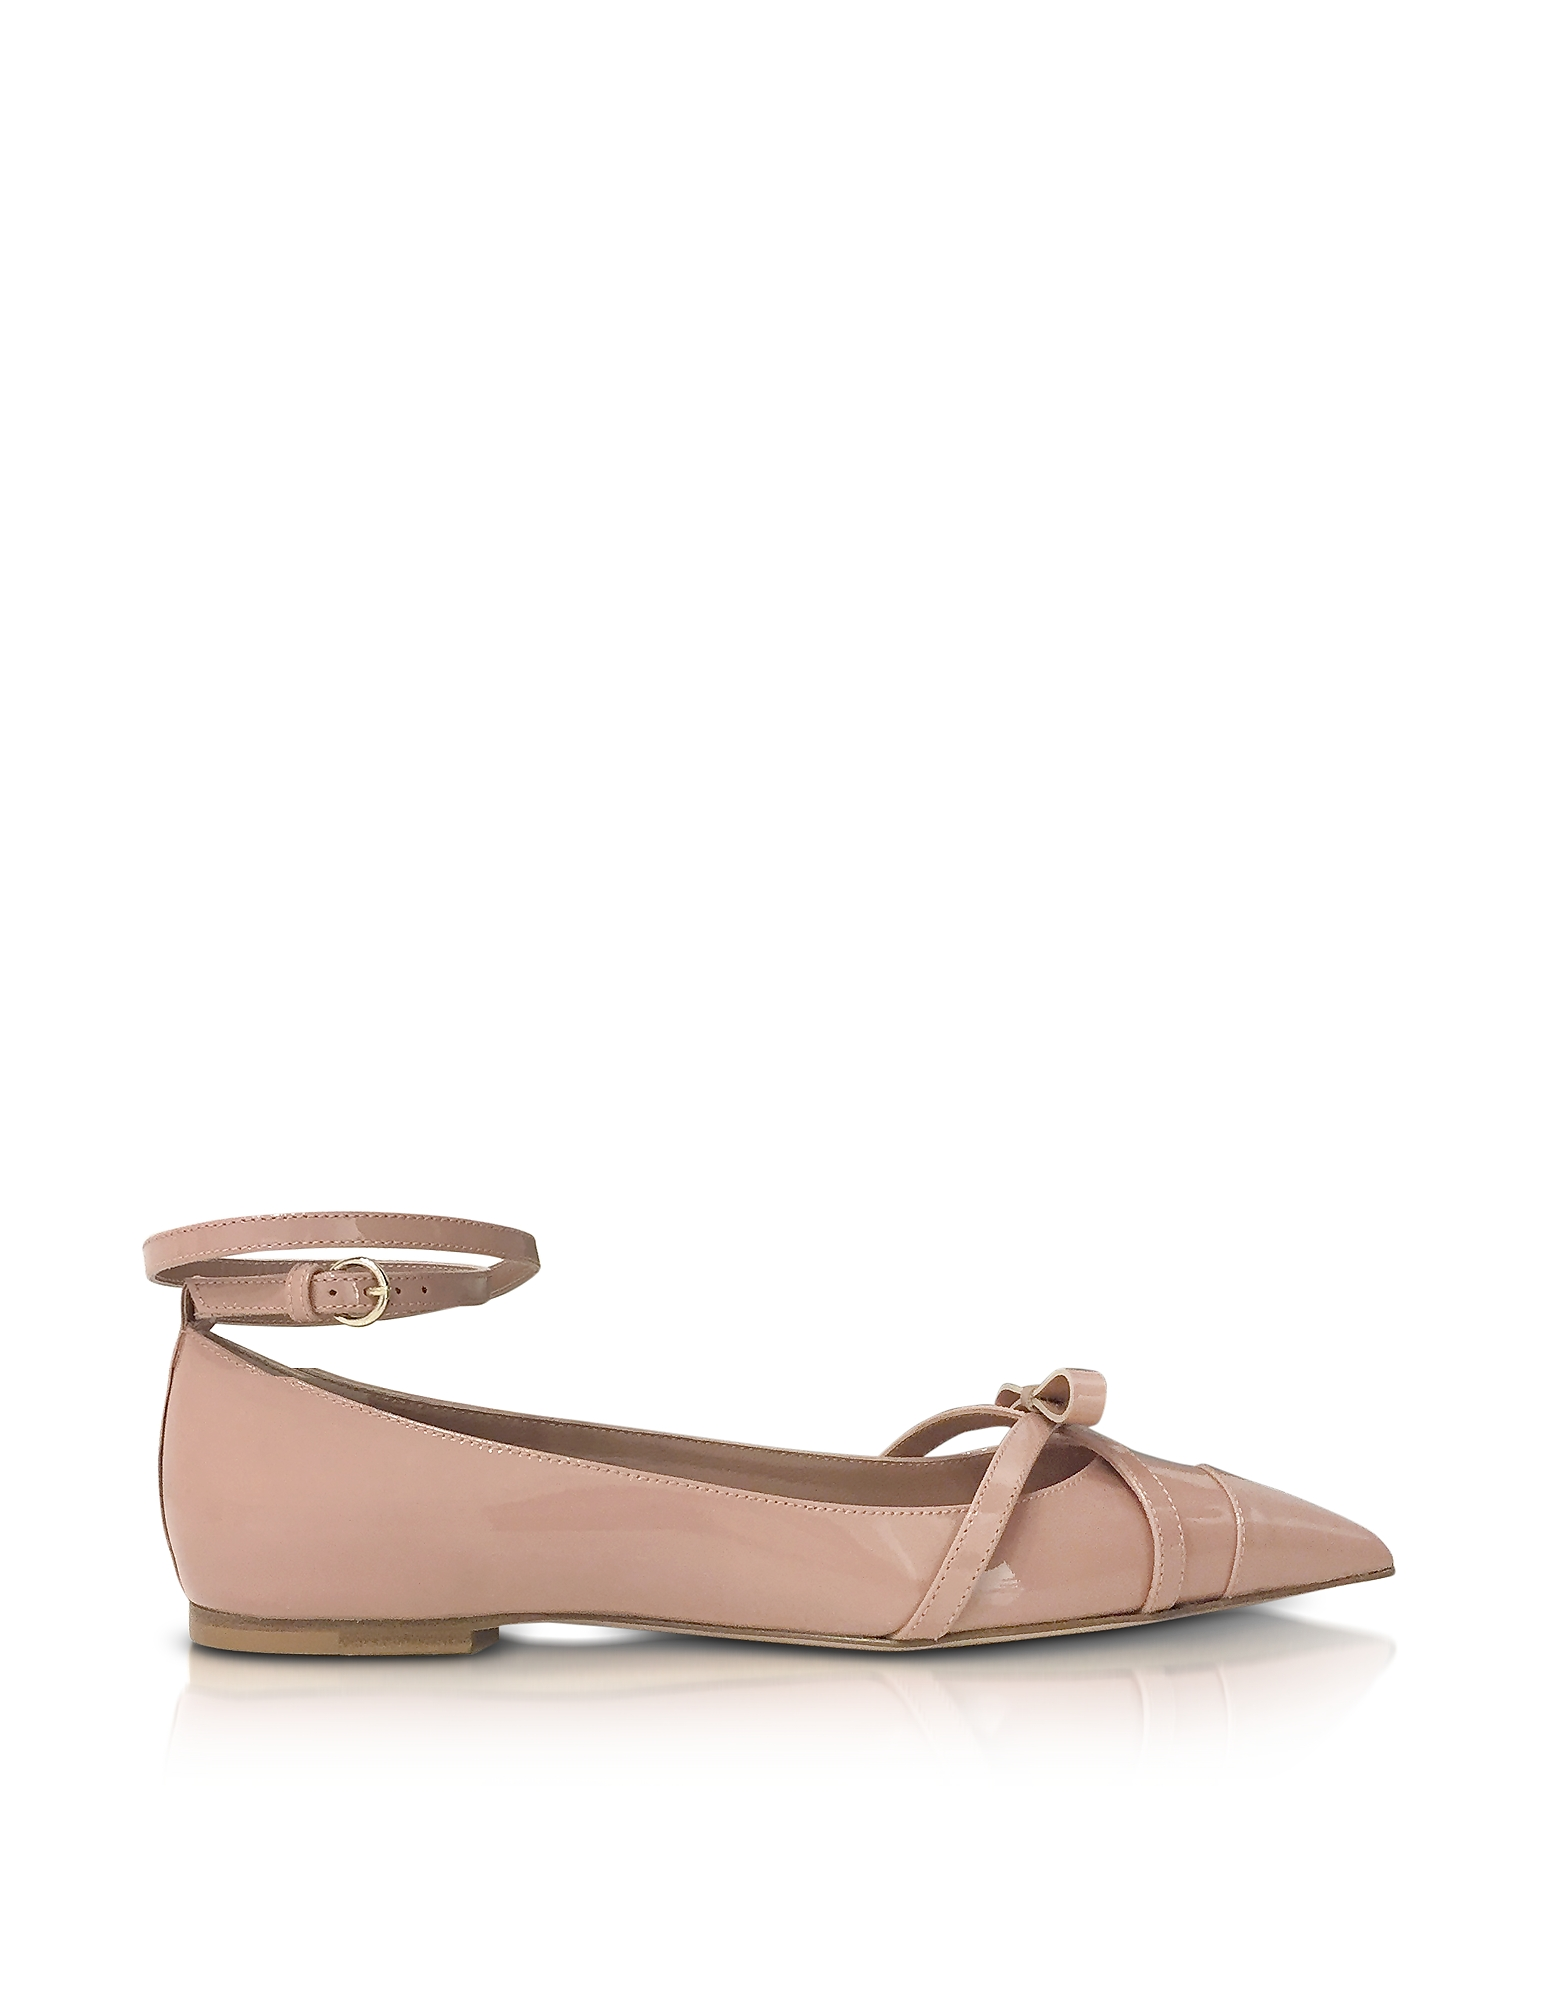 RED Valentino Shoes, Nude Patent Leather Ballerinas